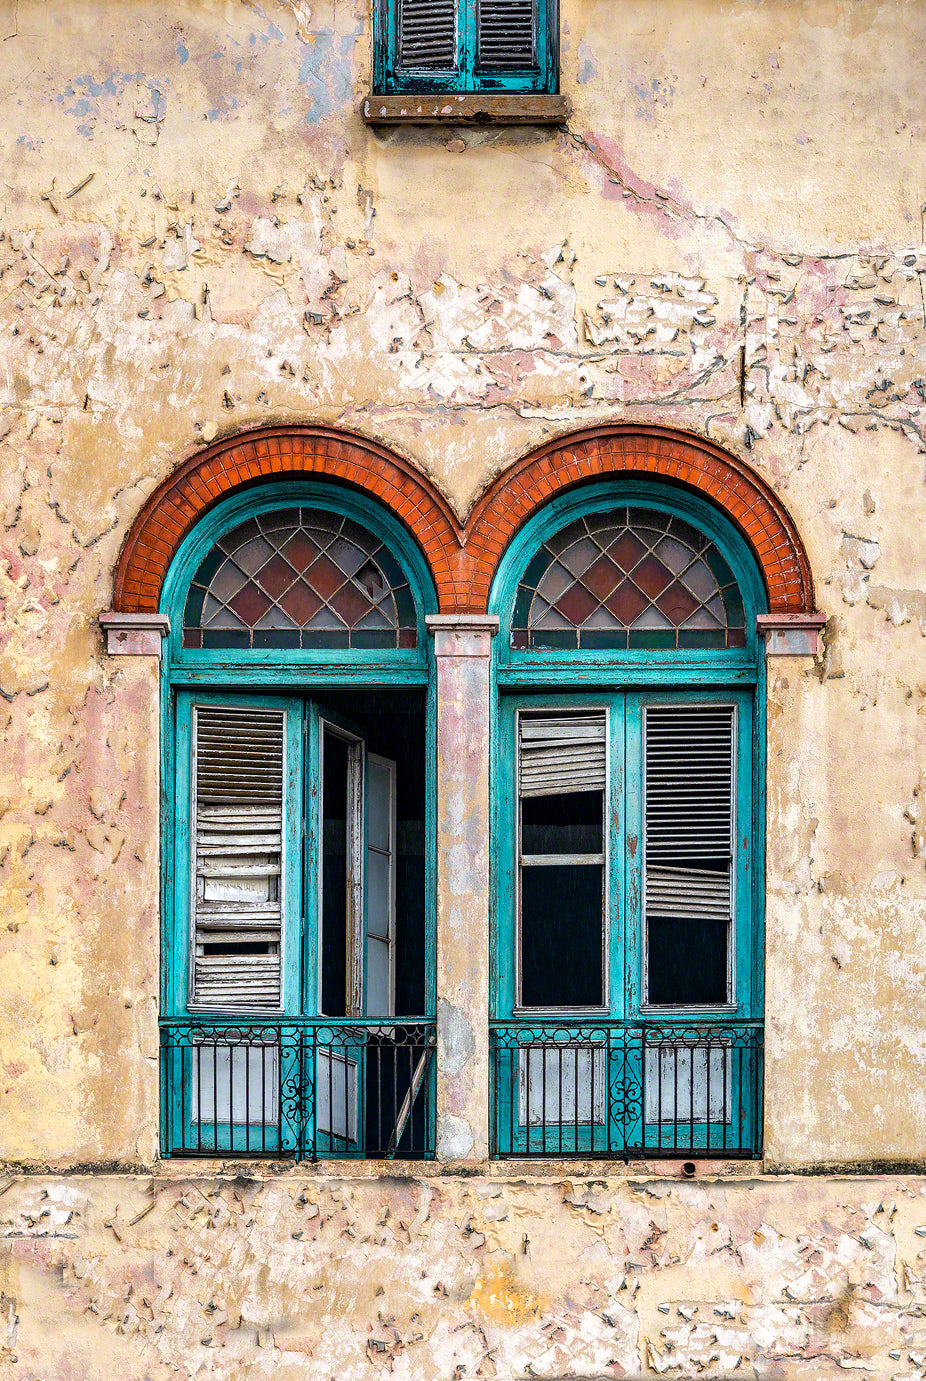 A photo of old turquoise colored shutters in Havana, Cuba